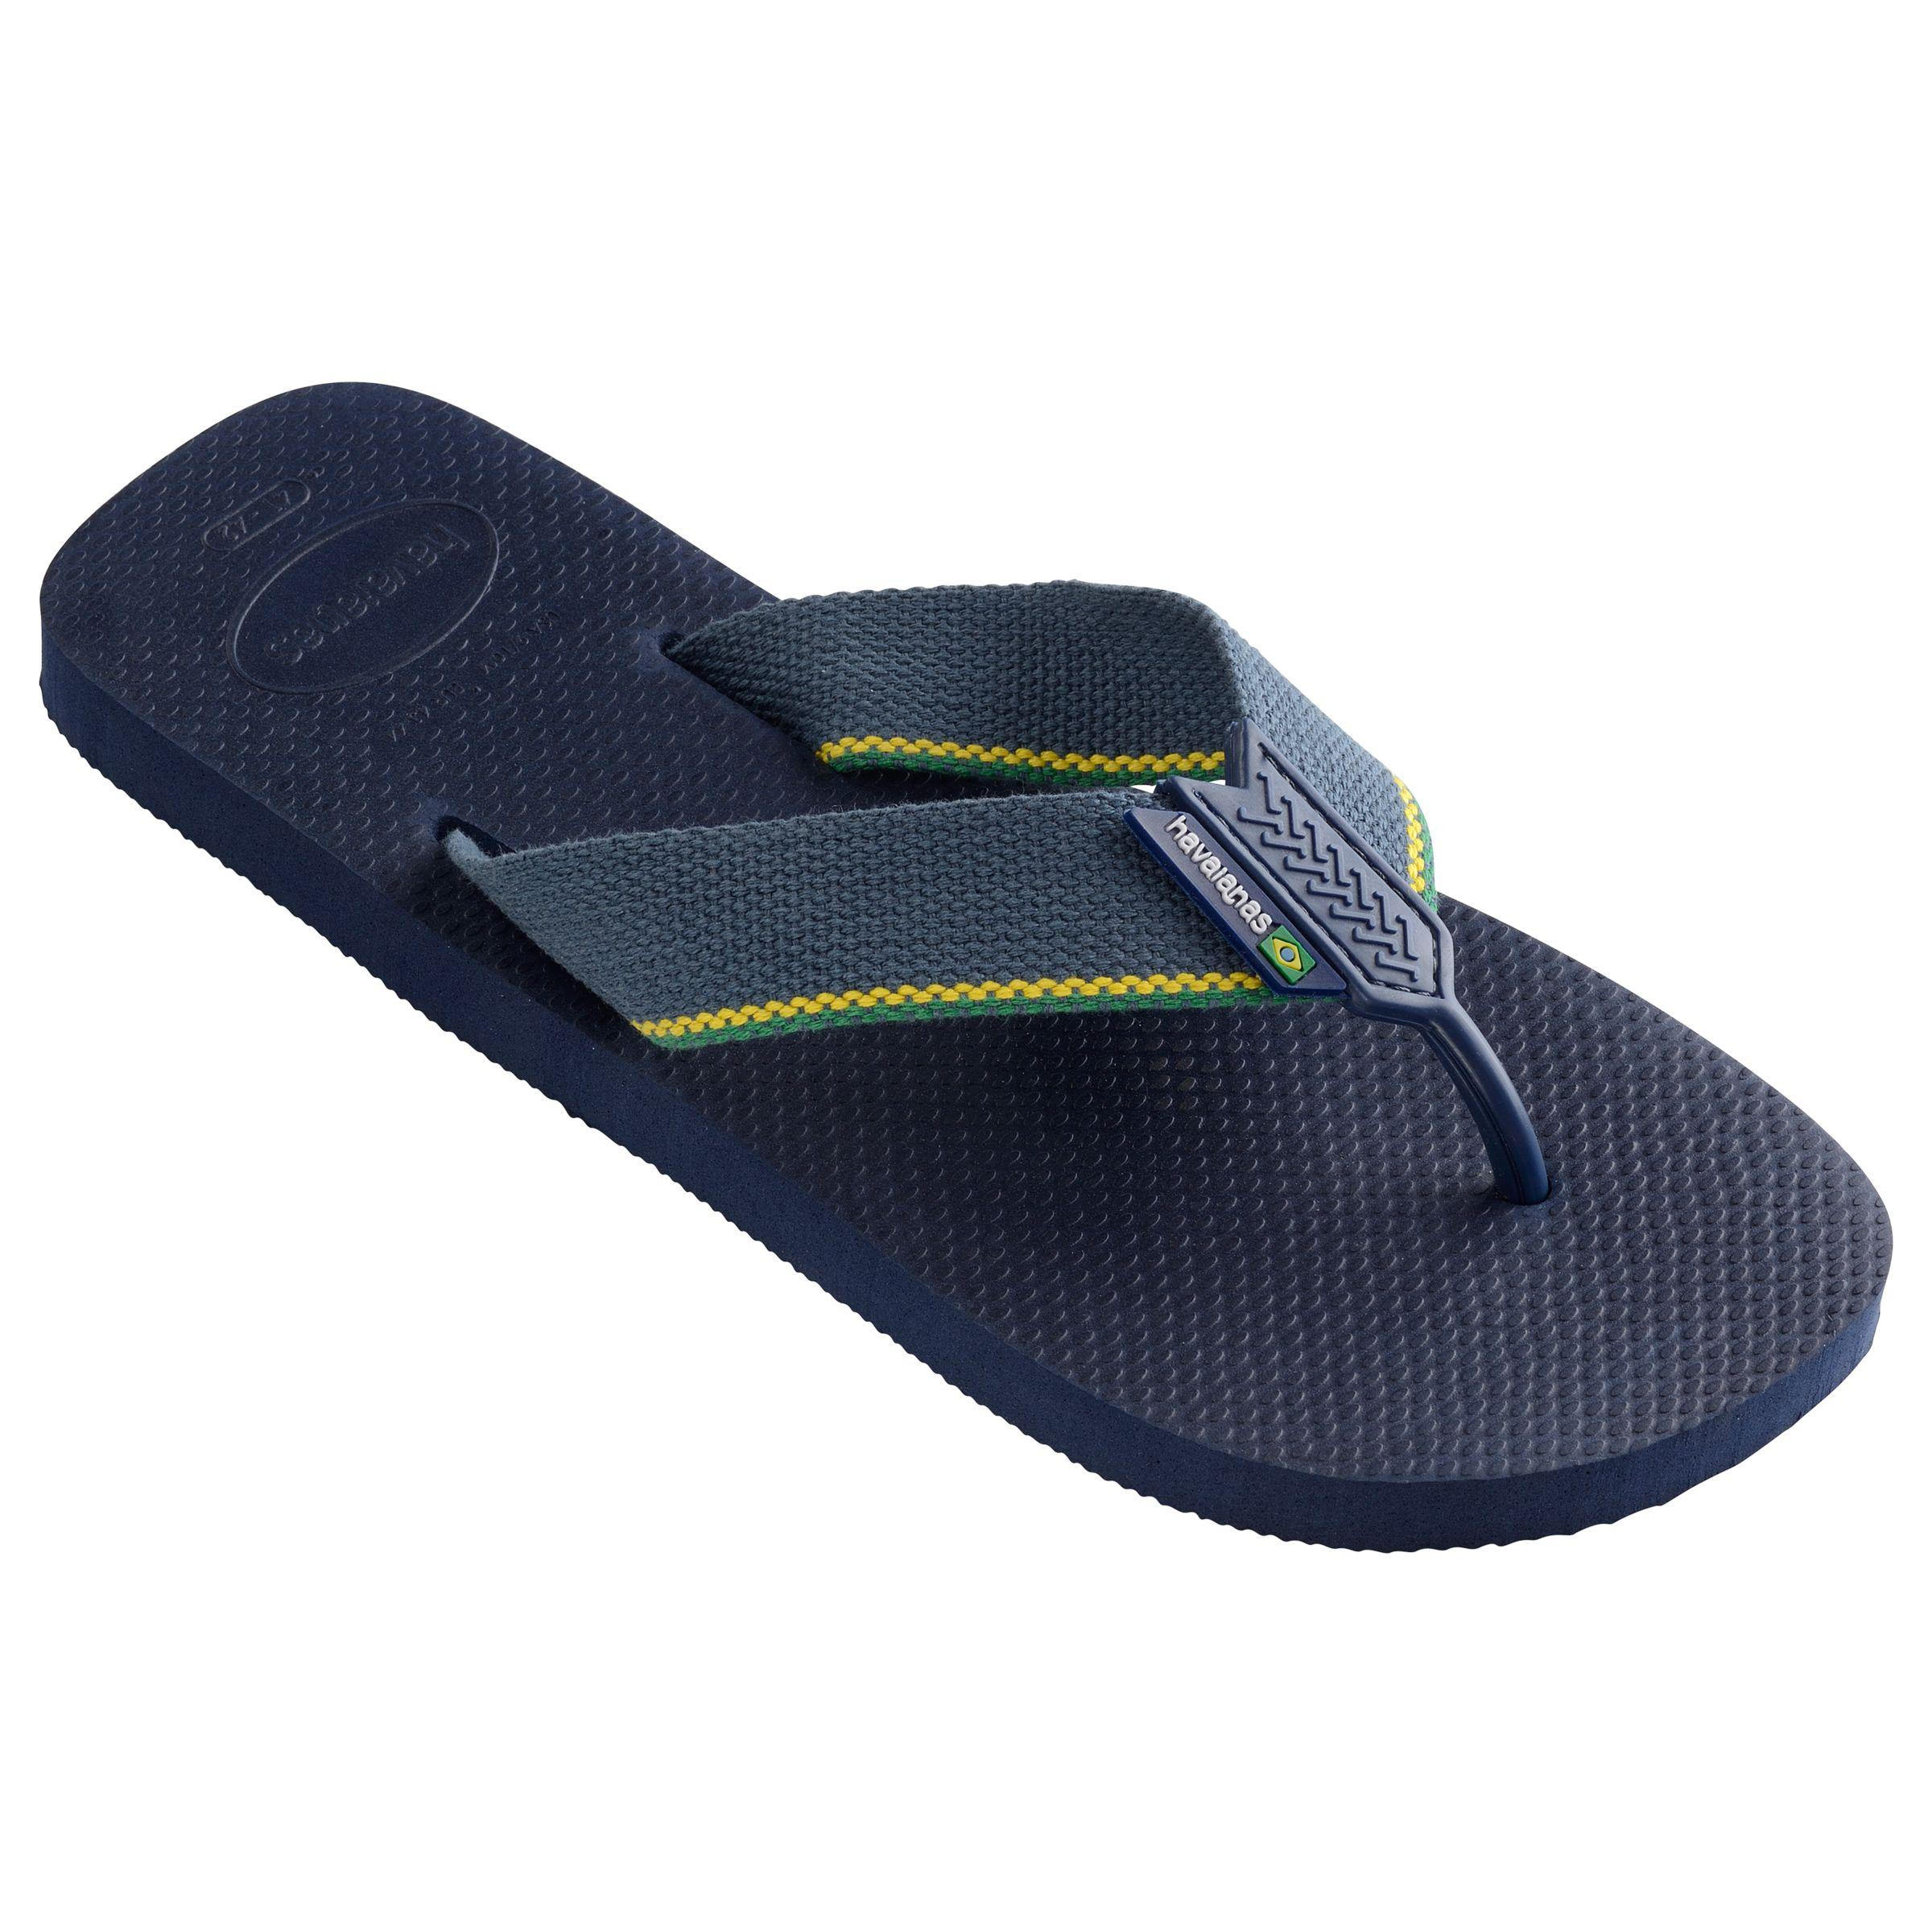 b015cf0c7bf9 Havaianas - Blue Urban Brasil Logo Flip Flops for Men - Lyst. View  fullscreen